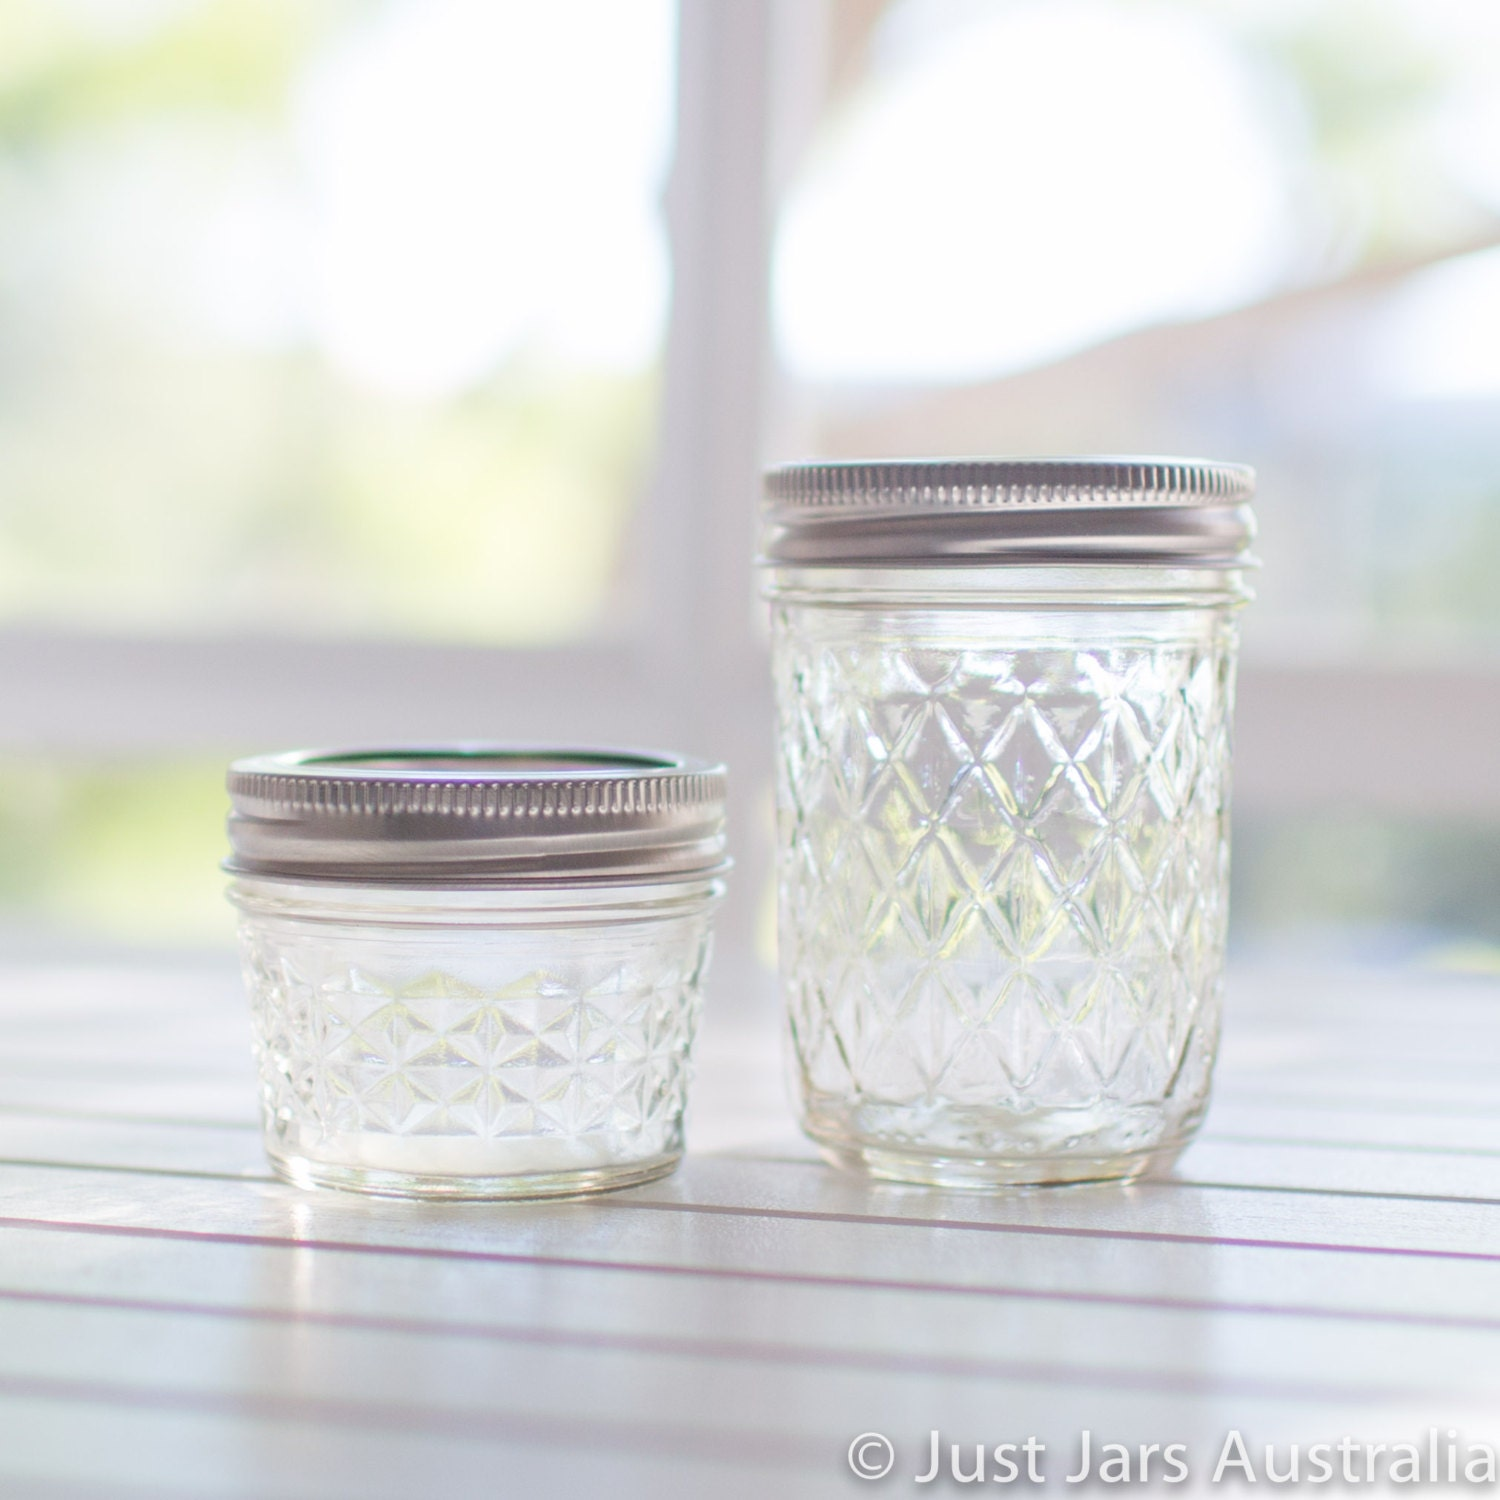 bulk mixed pack 48 quilted ball mason jars with lids. Black Bedroom Furniture Sets. Home Design Ideas